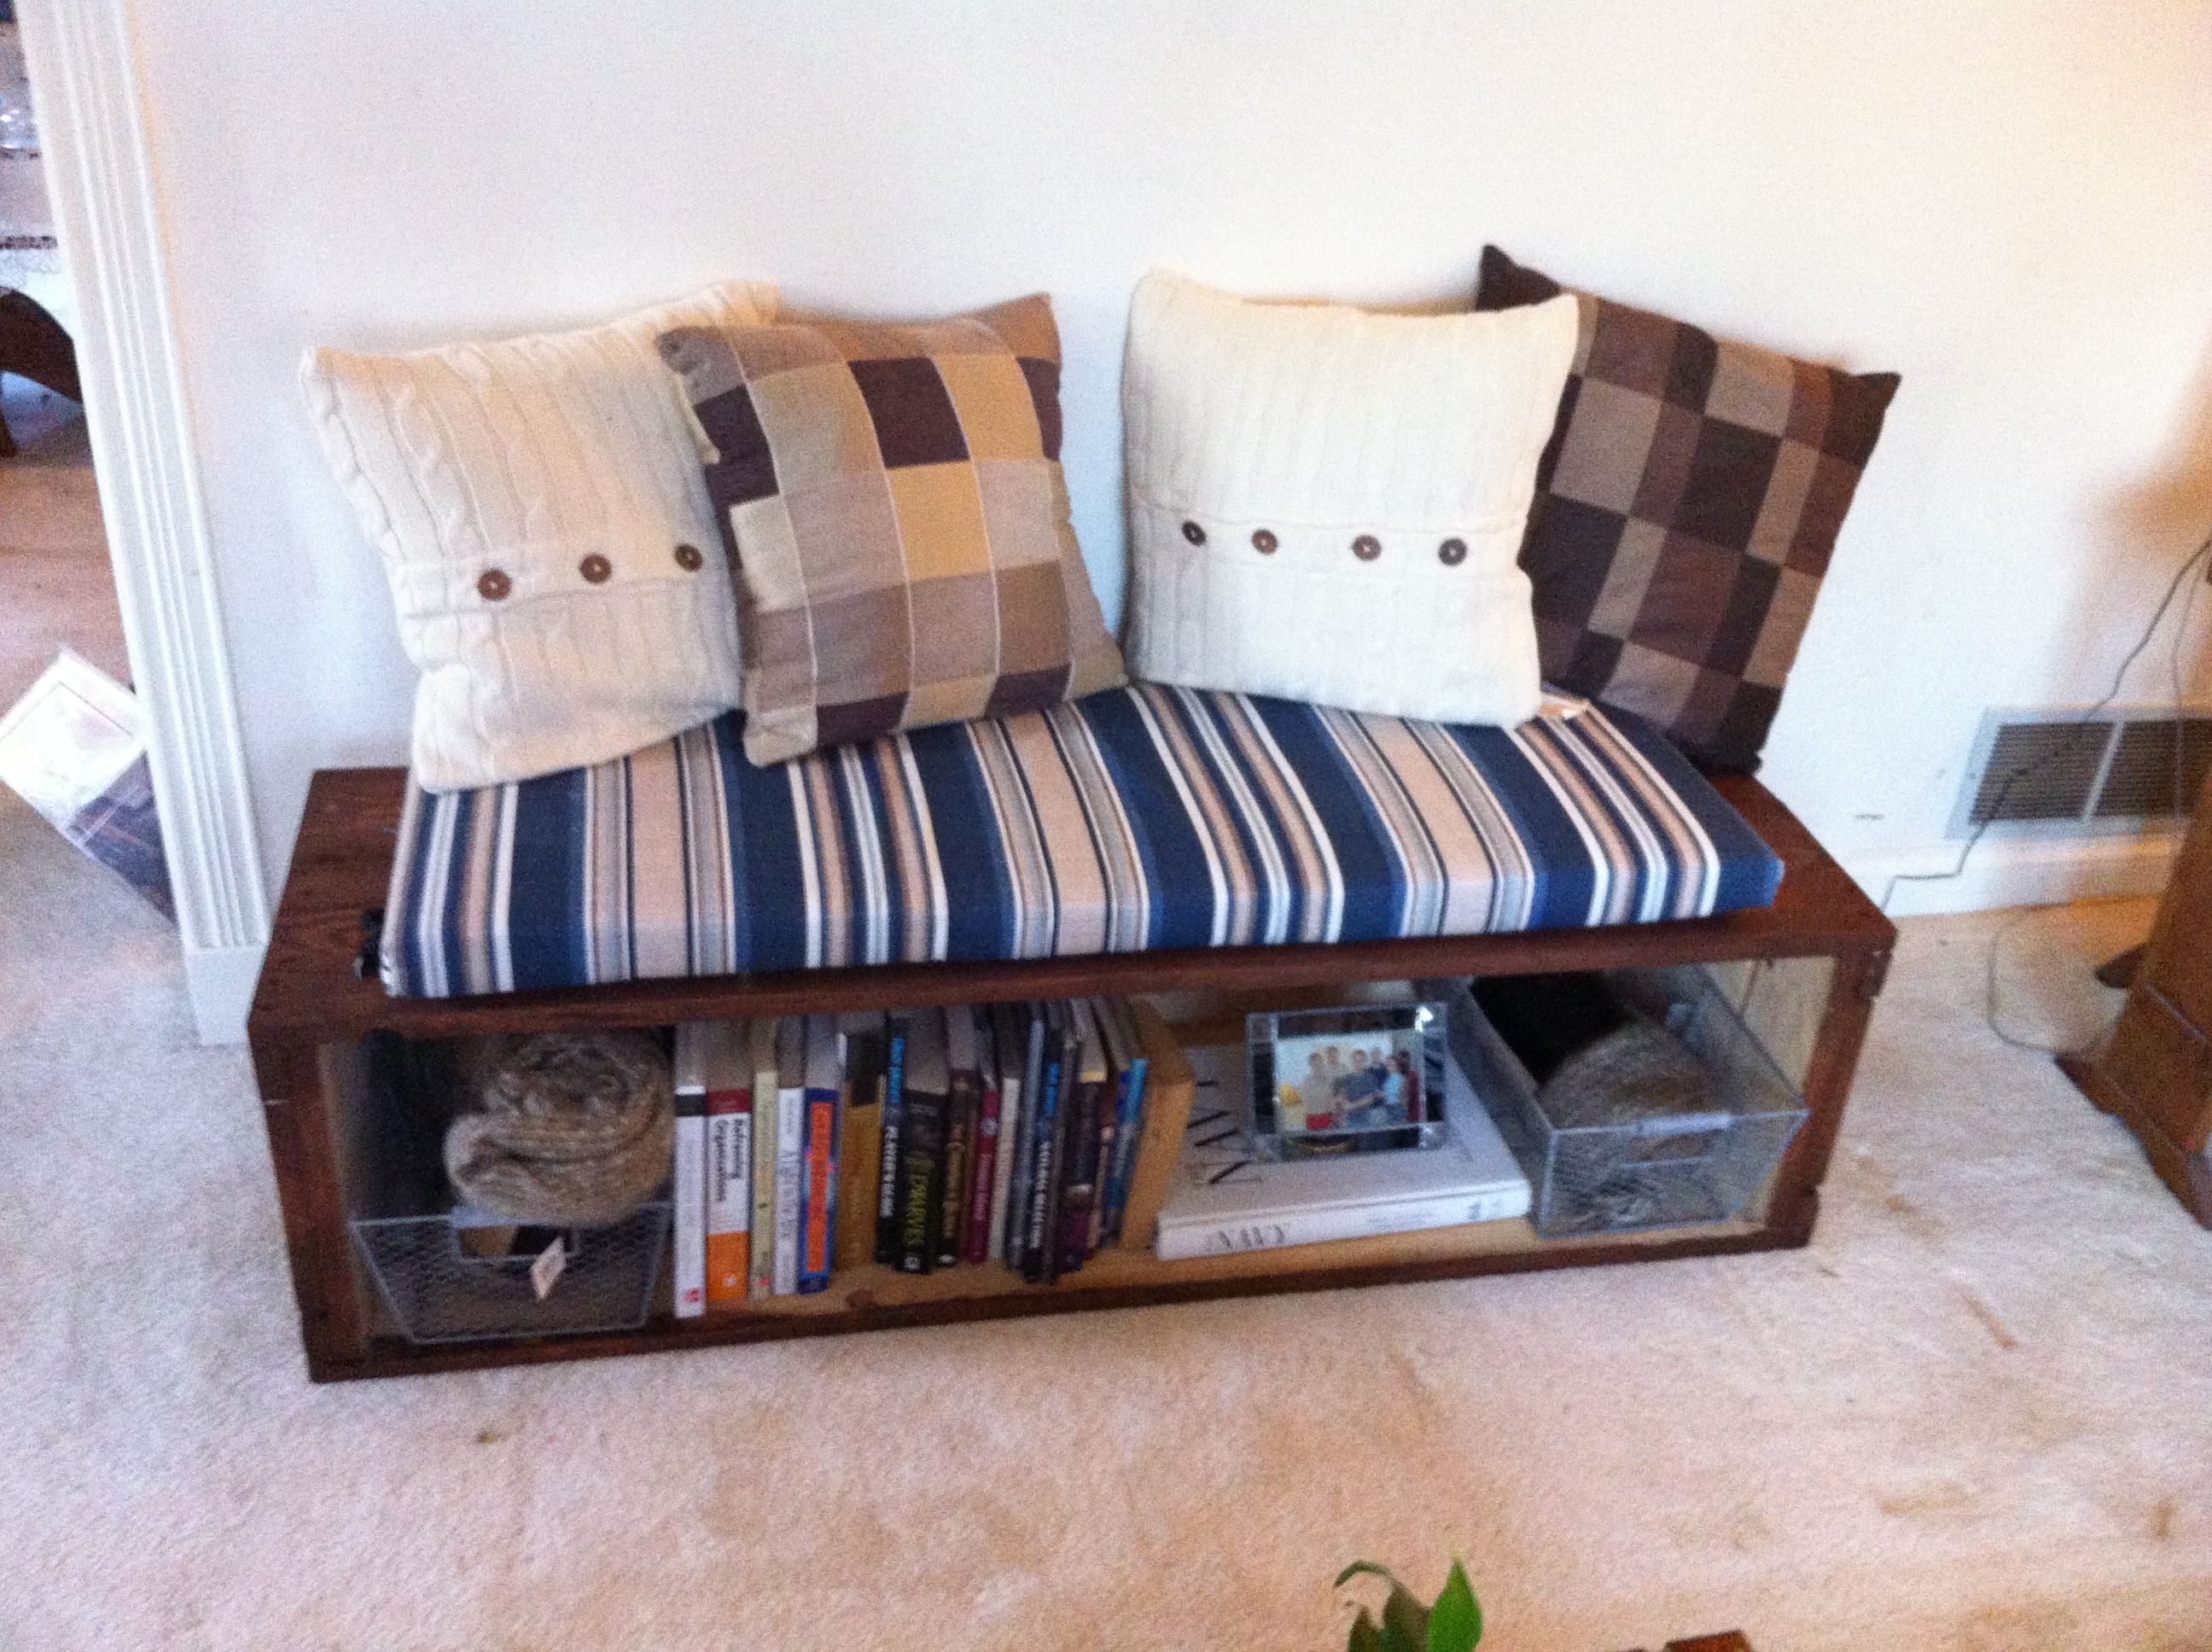 This cute little book bench is a recycled parts box from a machine shop. A few h...